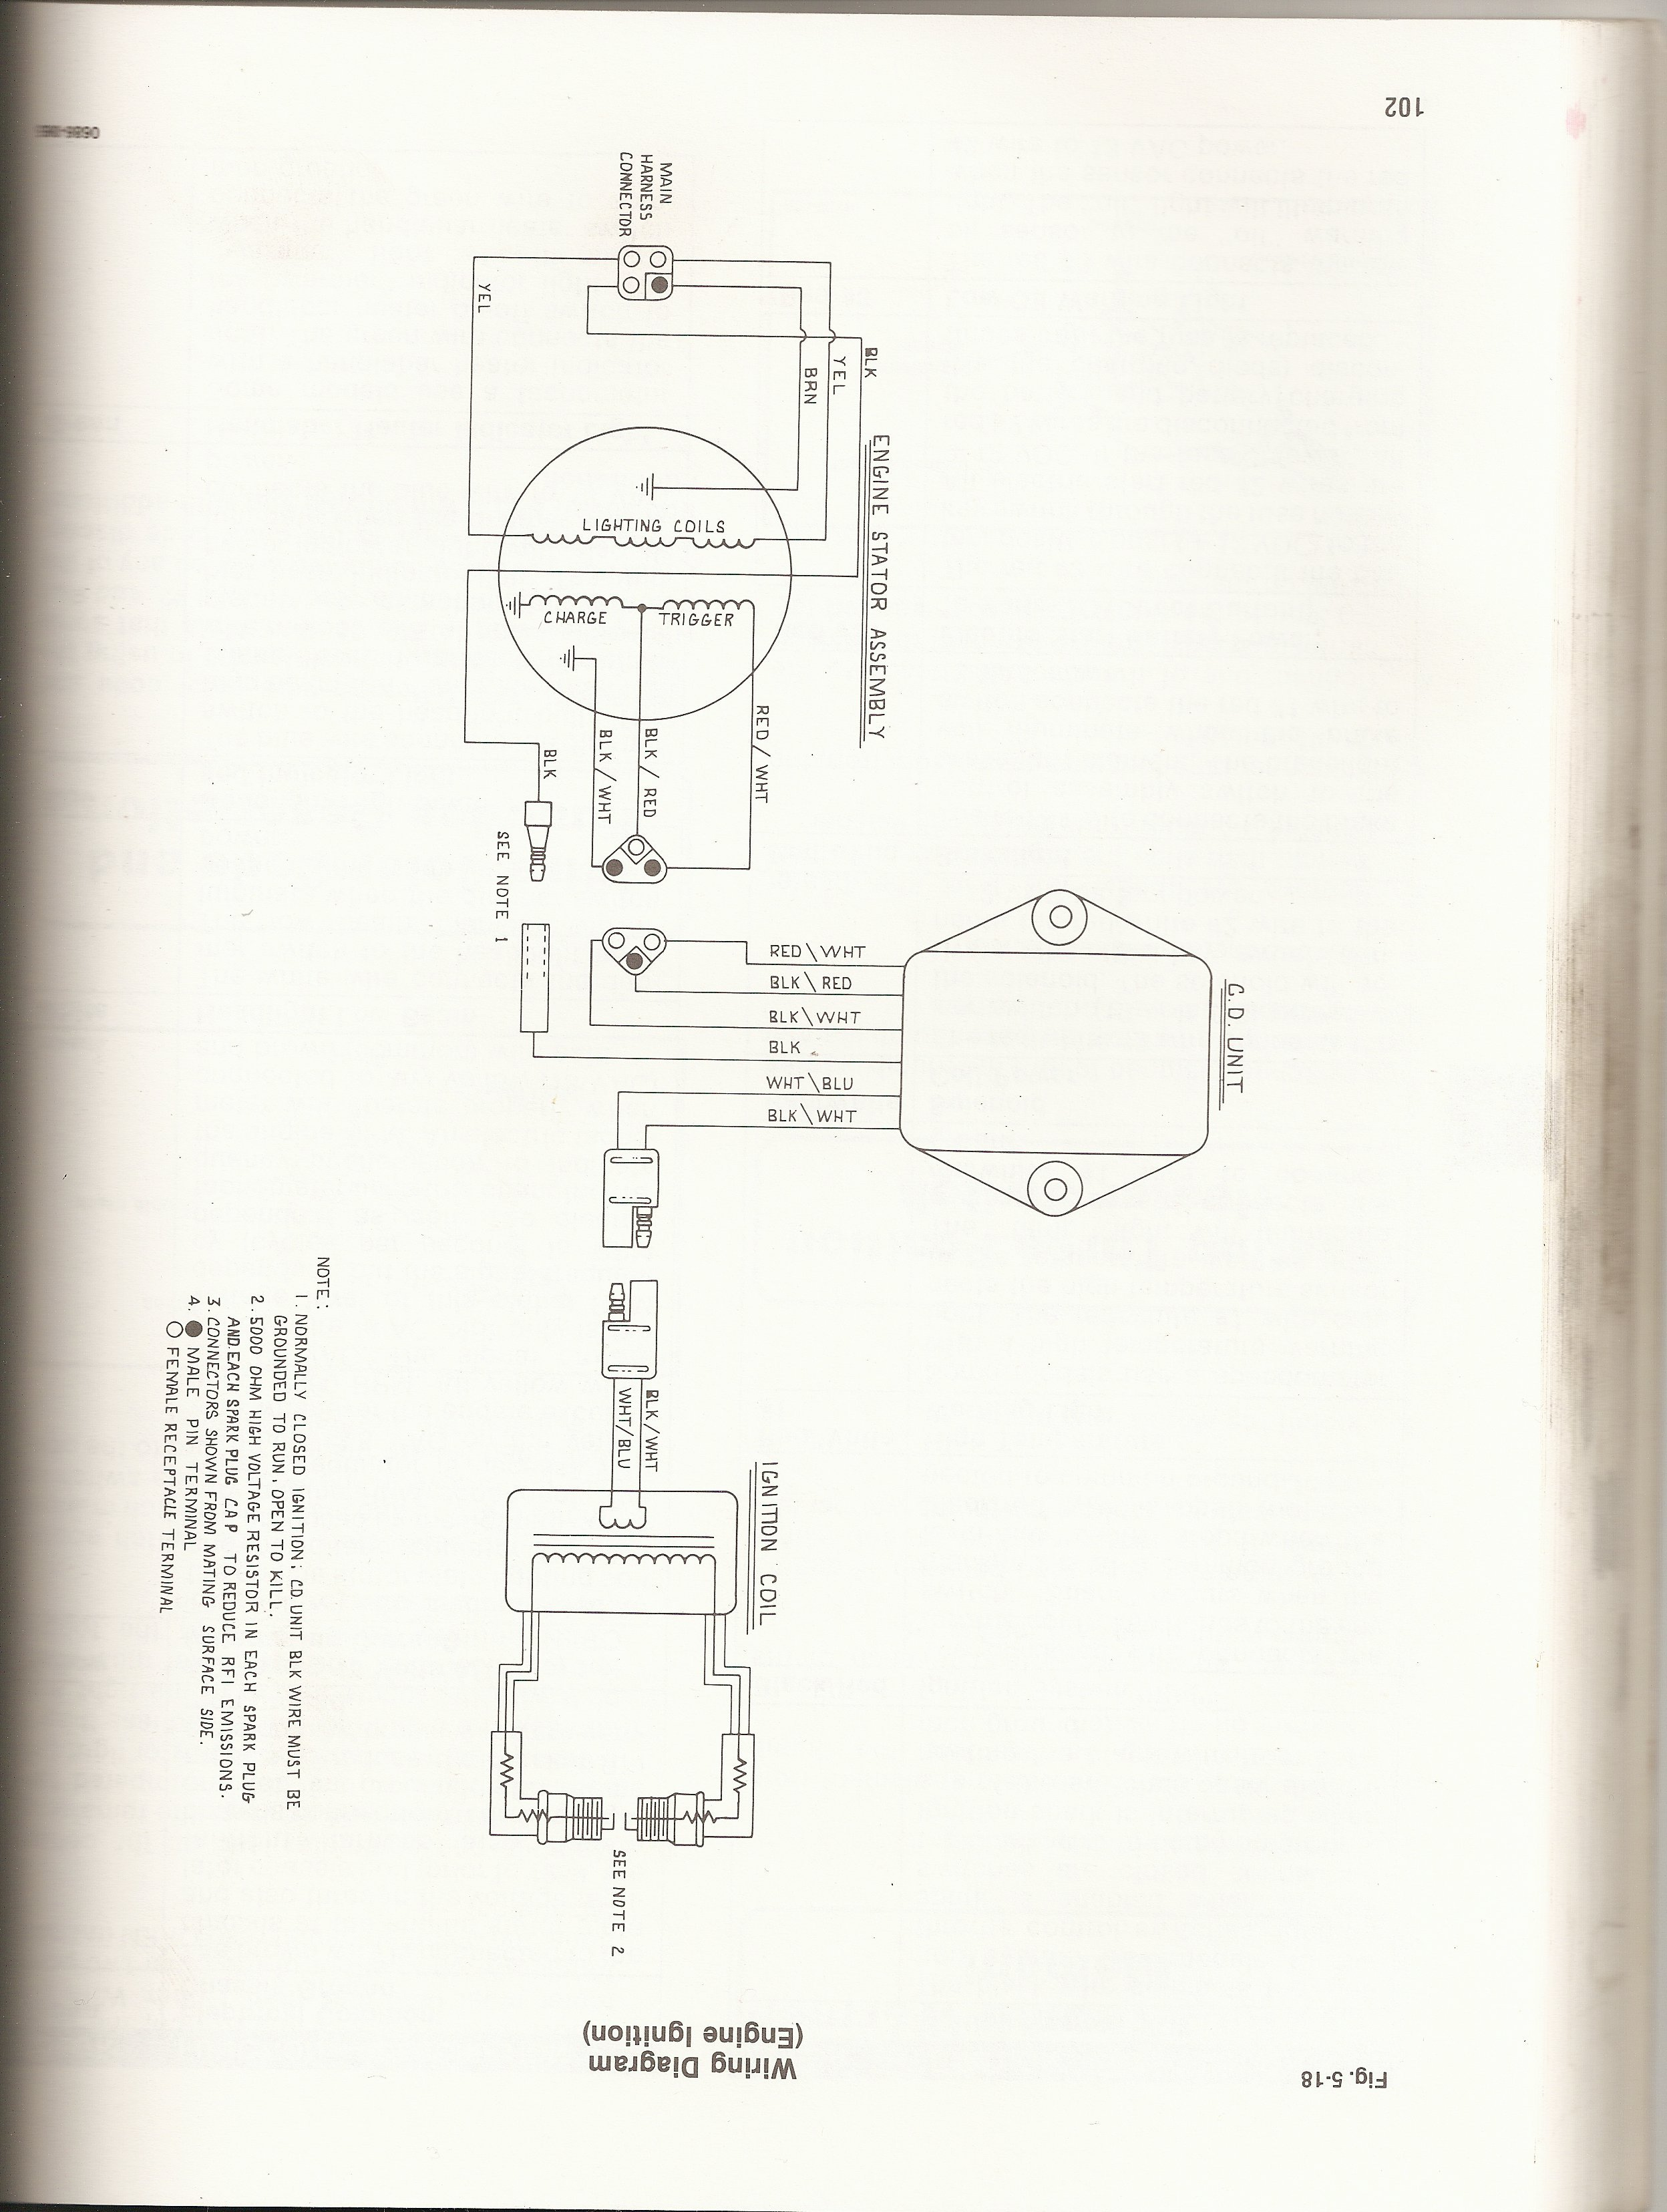 139506d1198506633 1992 wildcat wiring diagram scan0014 arctic cat jag wiring diagram for 1979 wiring diagrams Arctic Cat 250 Wiring Diagram at crackthecode.co